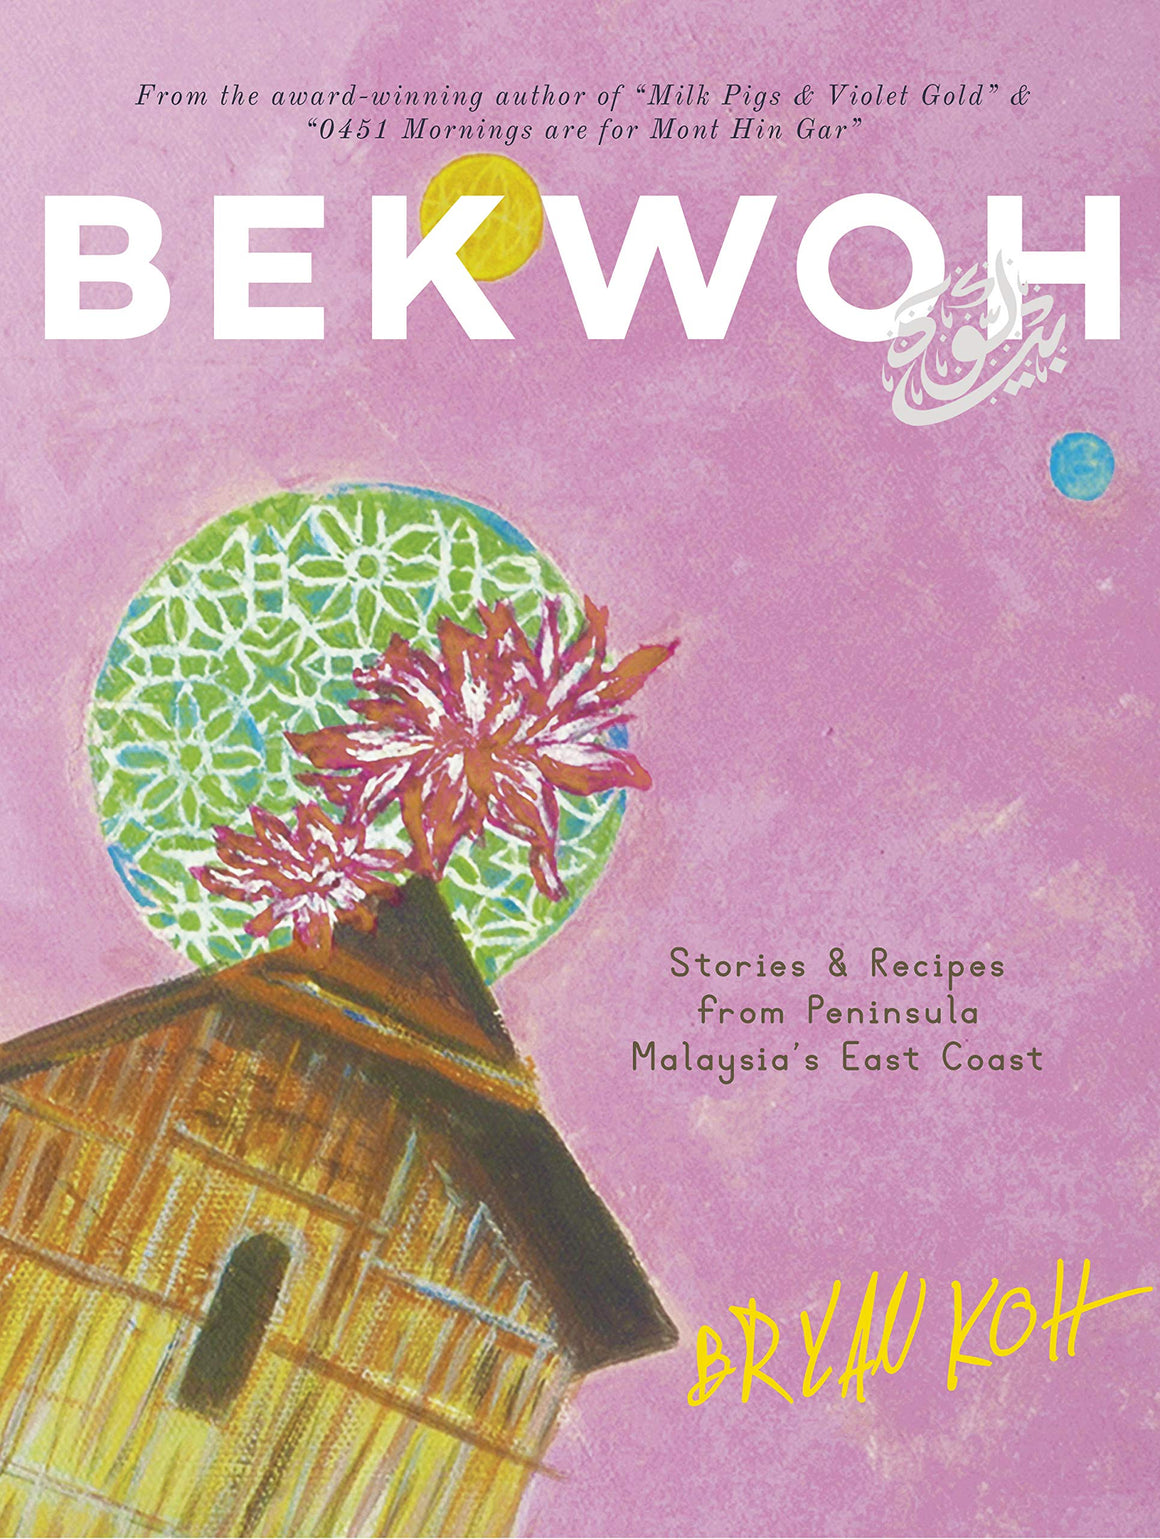 Bryan Koh. Bekwoh: Stories & Recipes from Peninsula Malaysia's East Coast